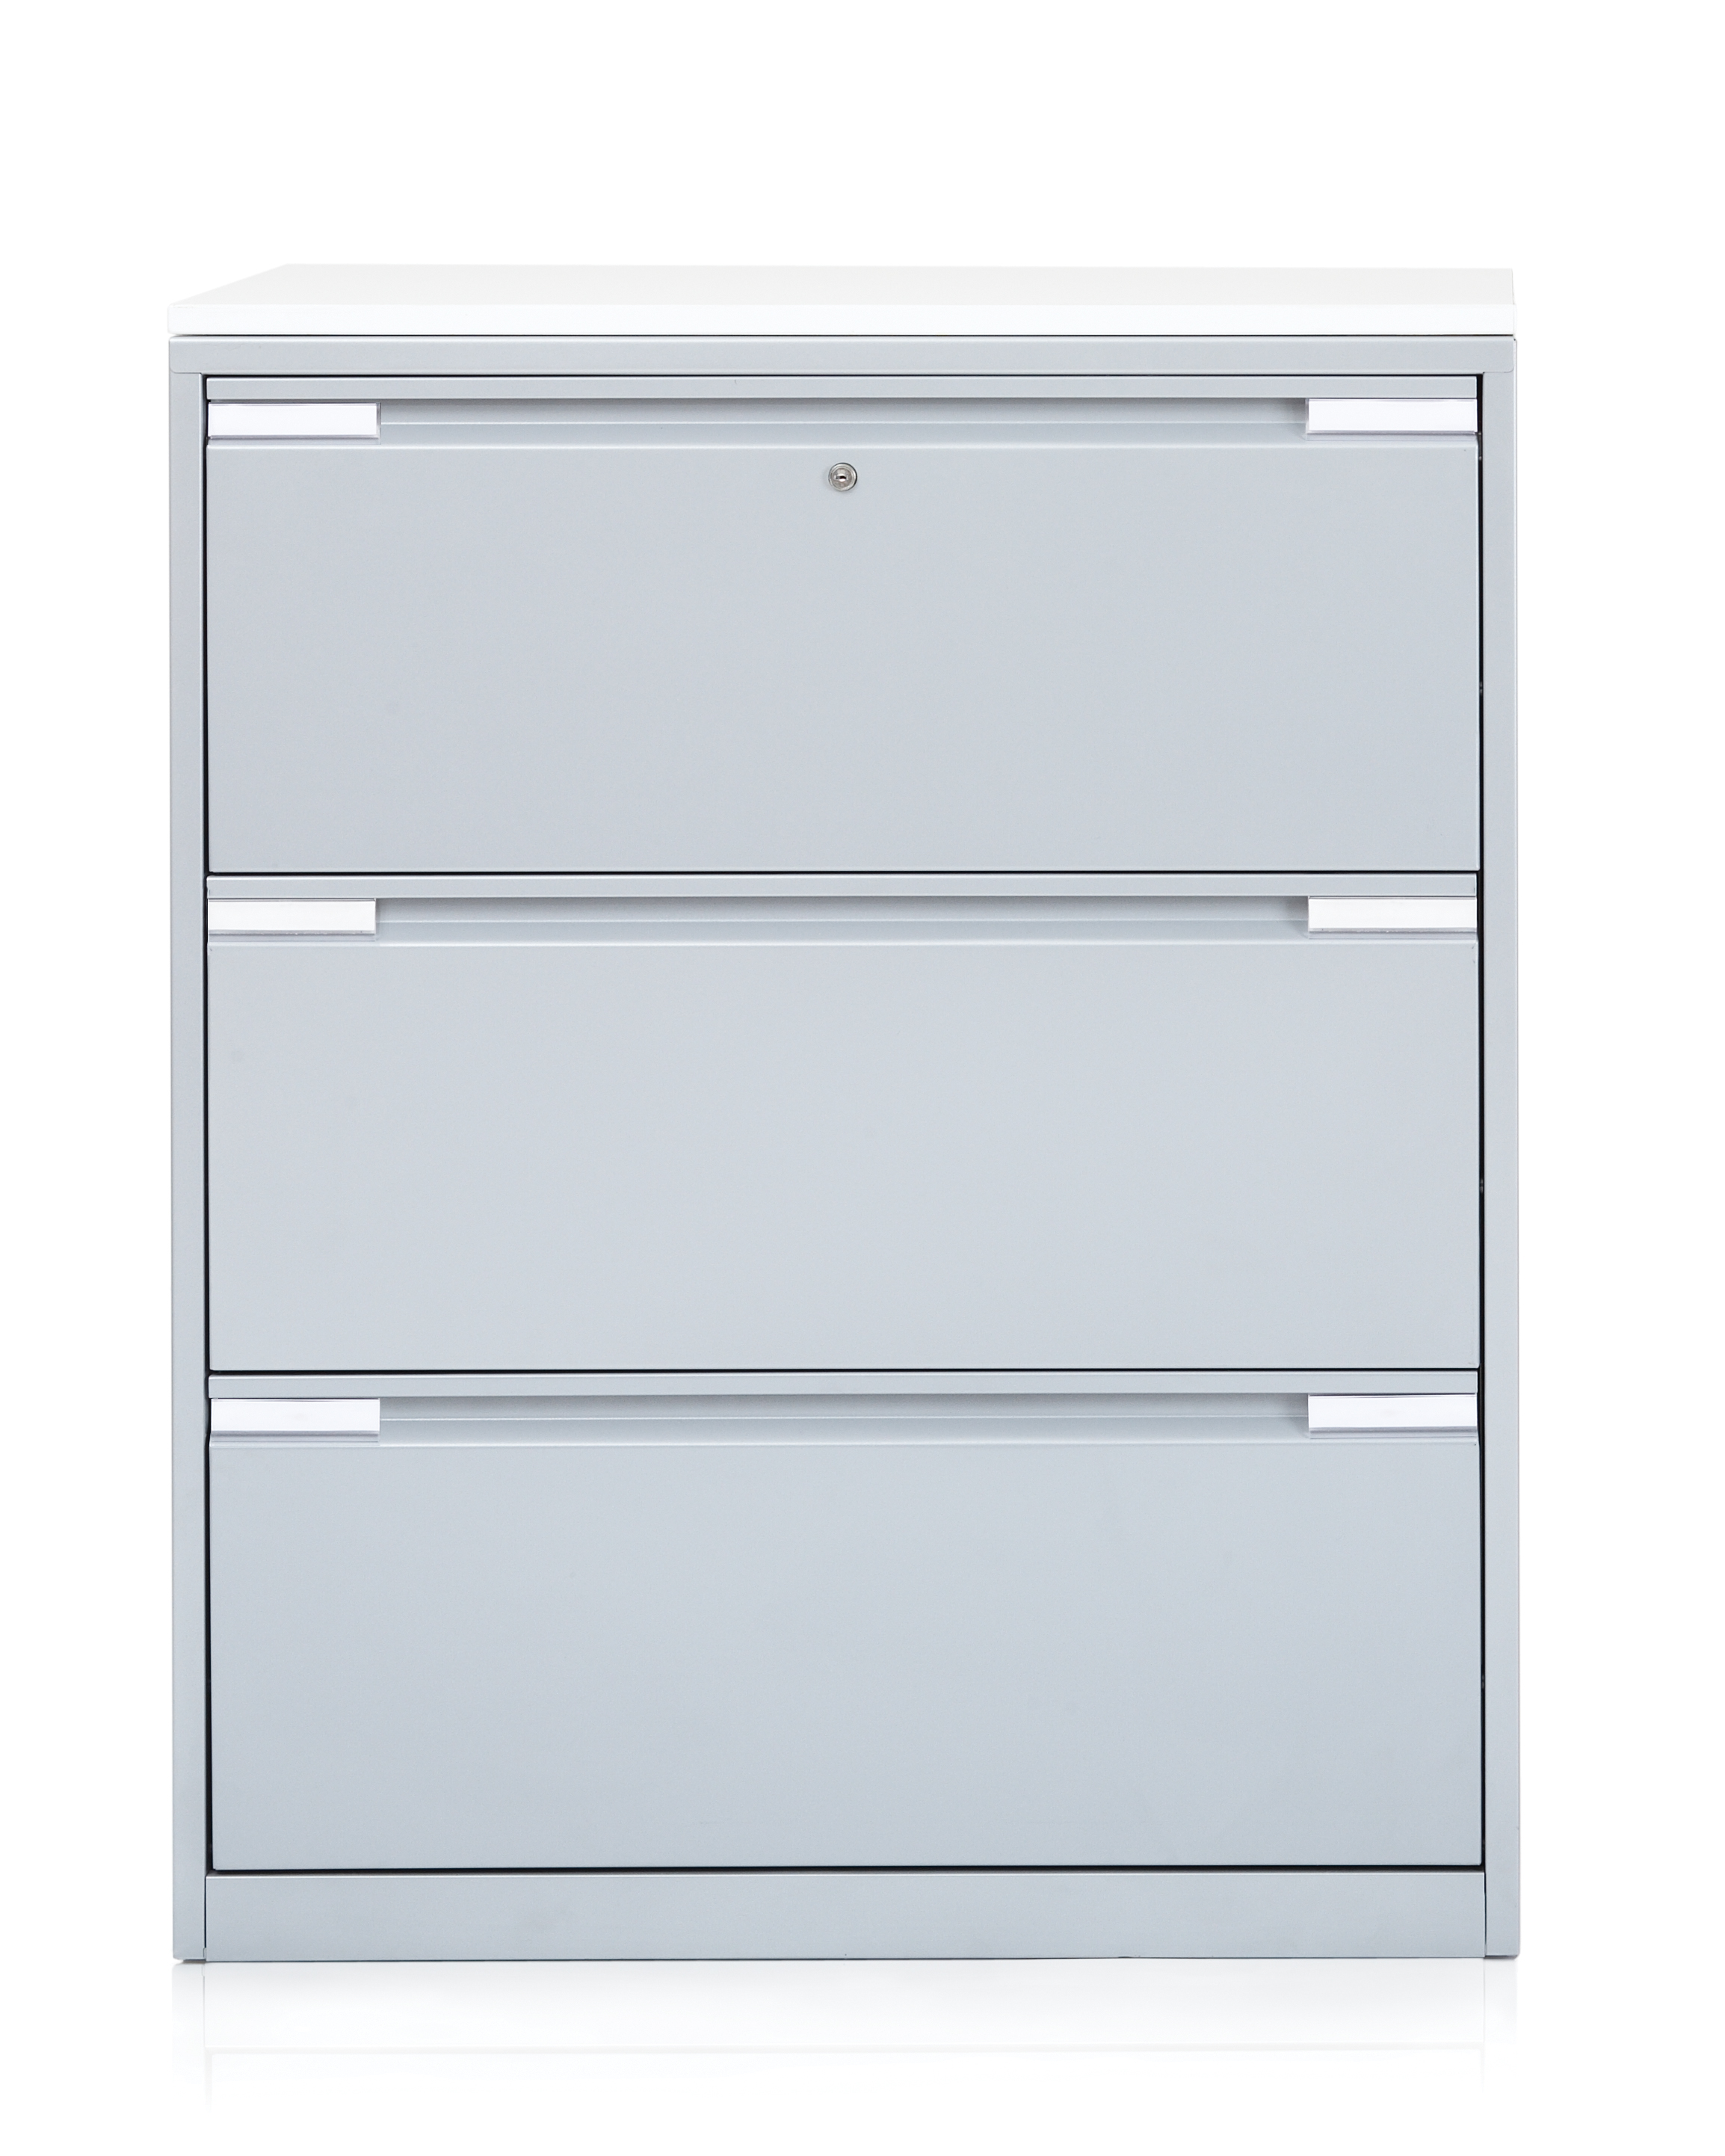 free canopy file product today refinery home pine jasmine mobile overstock filing garden shipping cabinet drawer